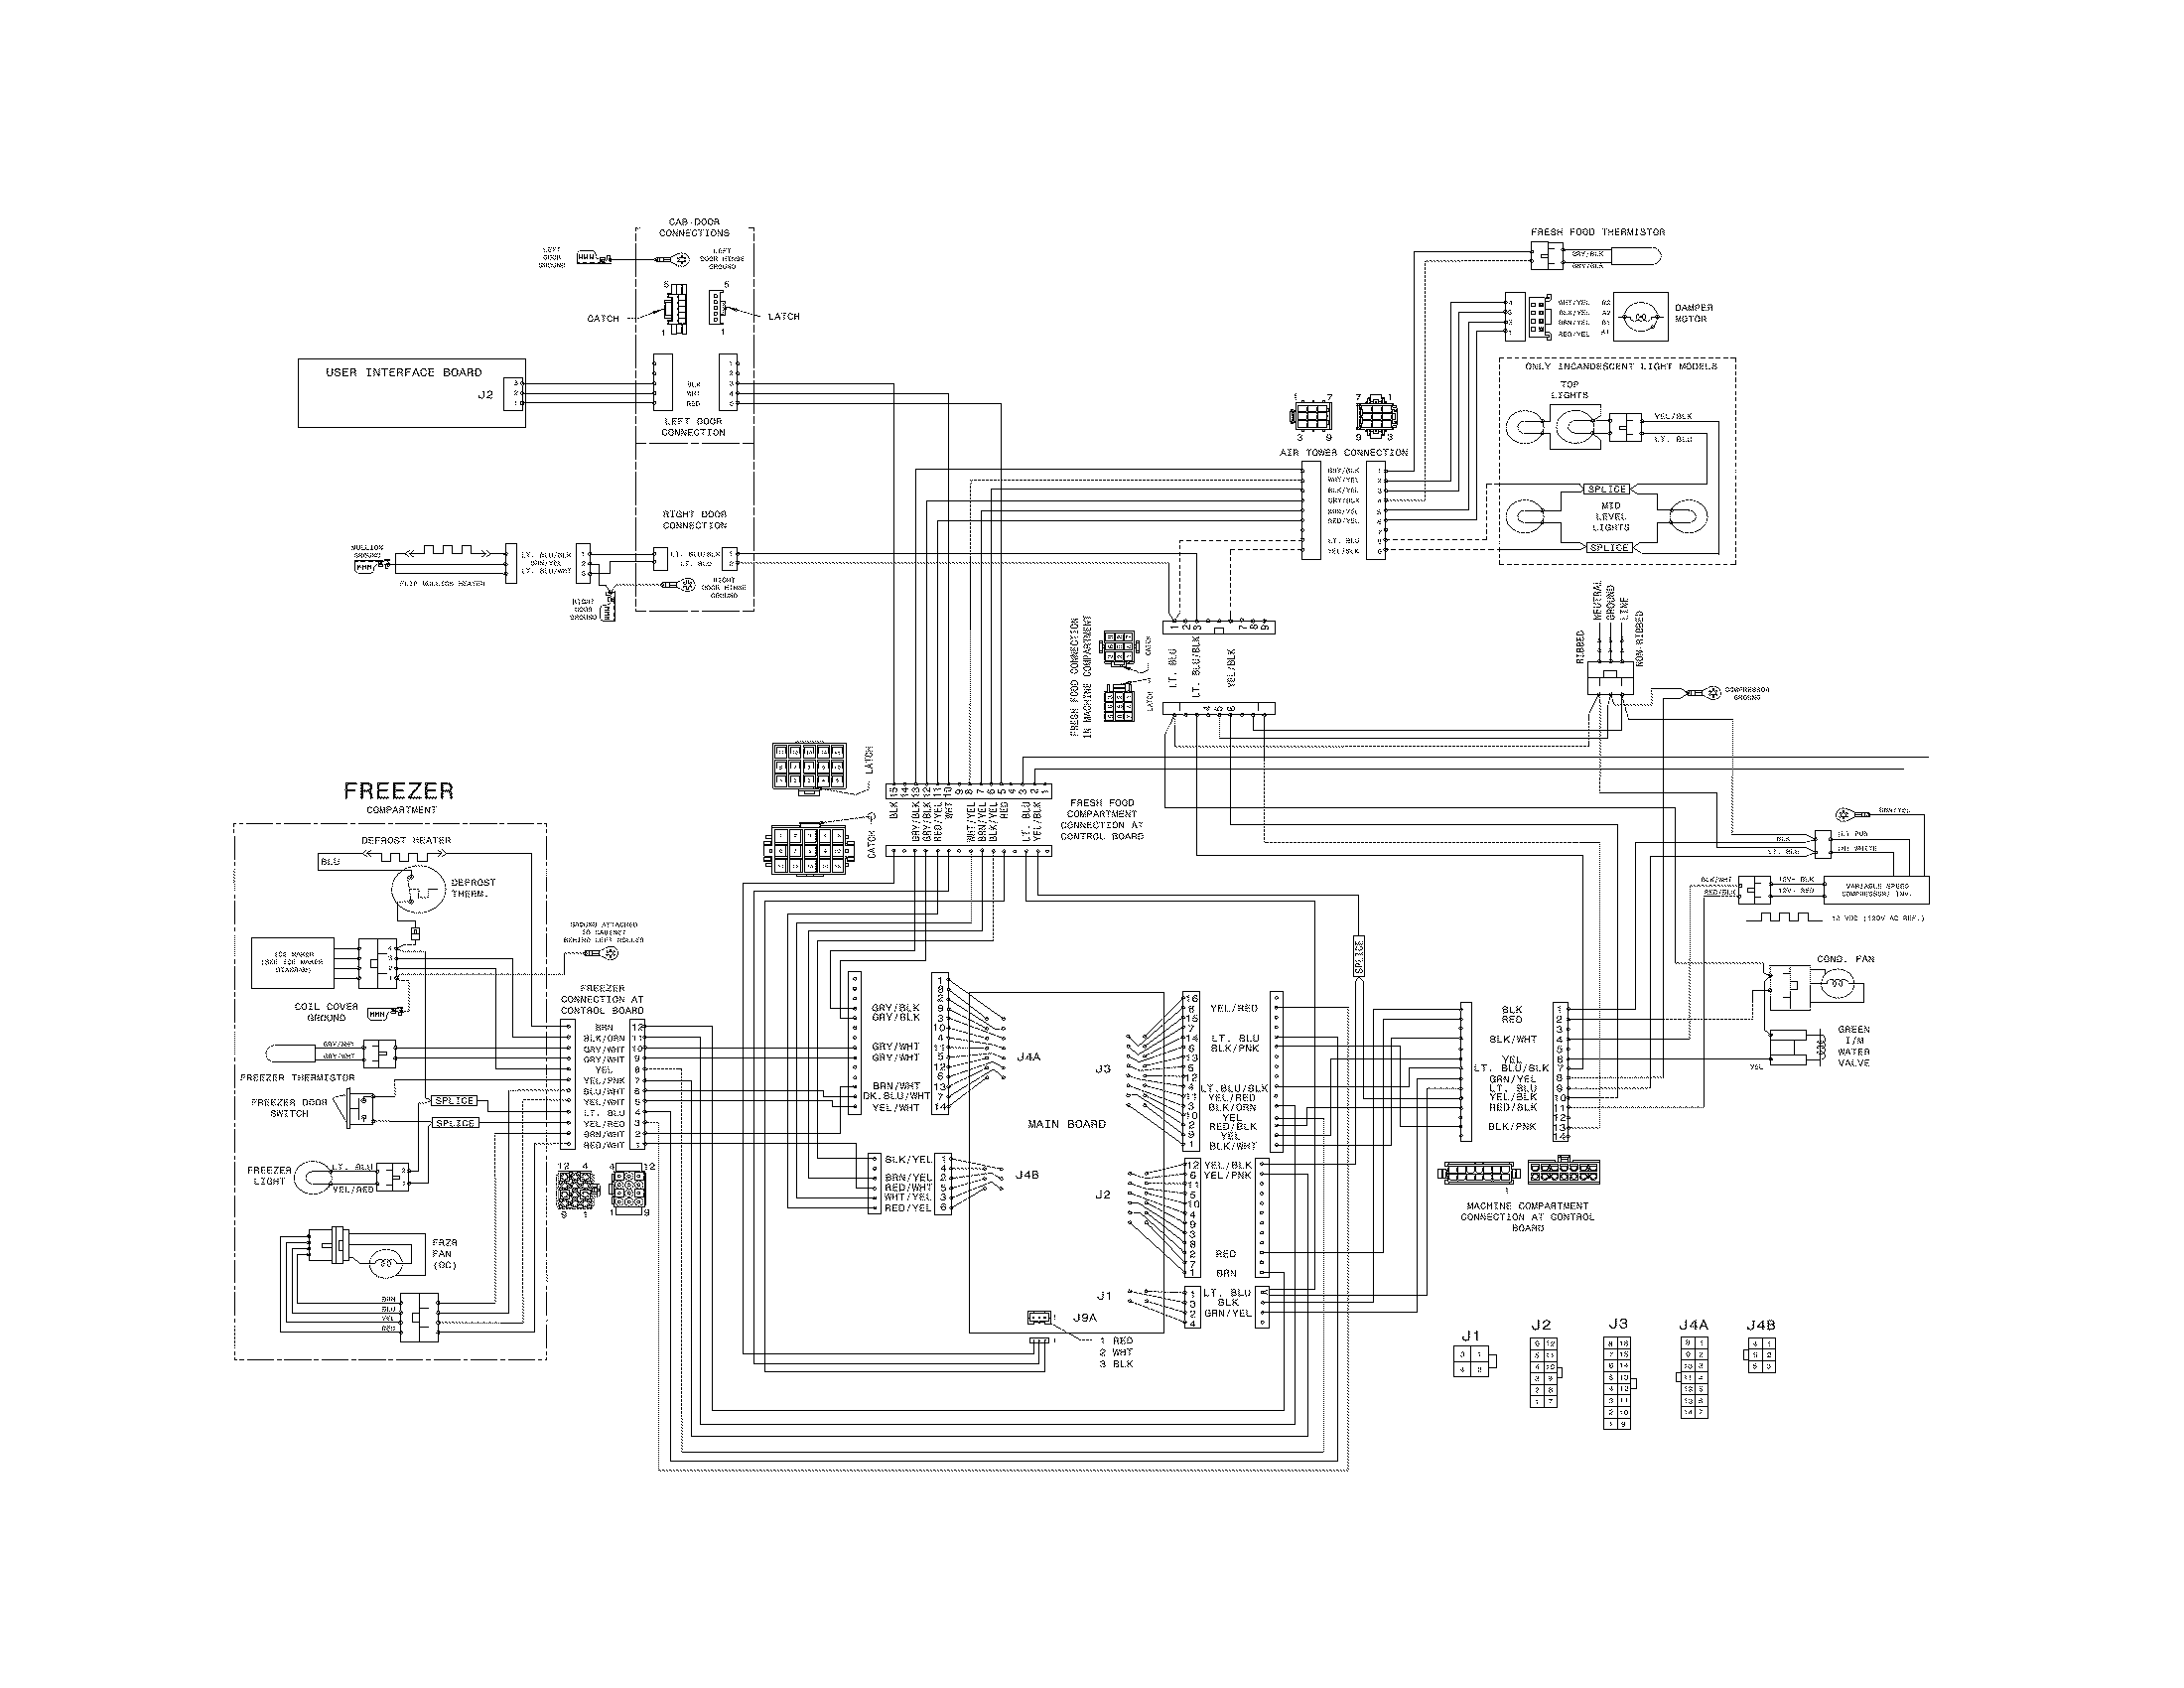 Wiring Diagram For Frigidaire Refrigerator. 301 moved